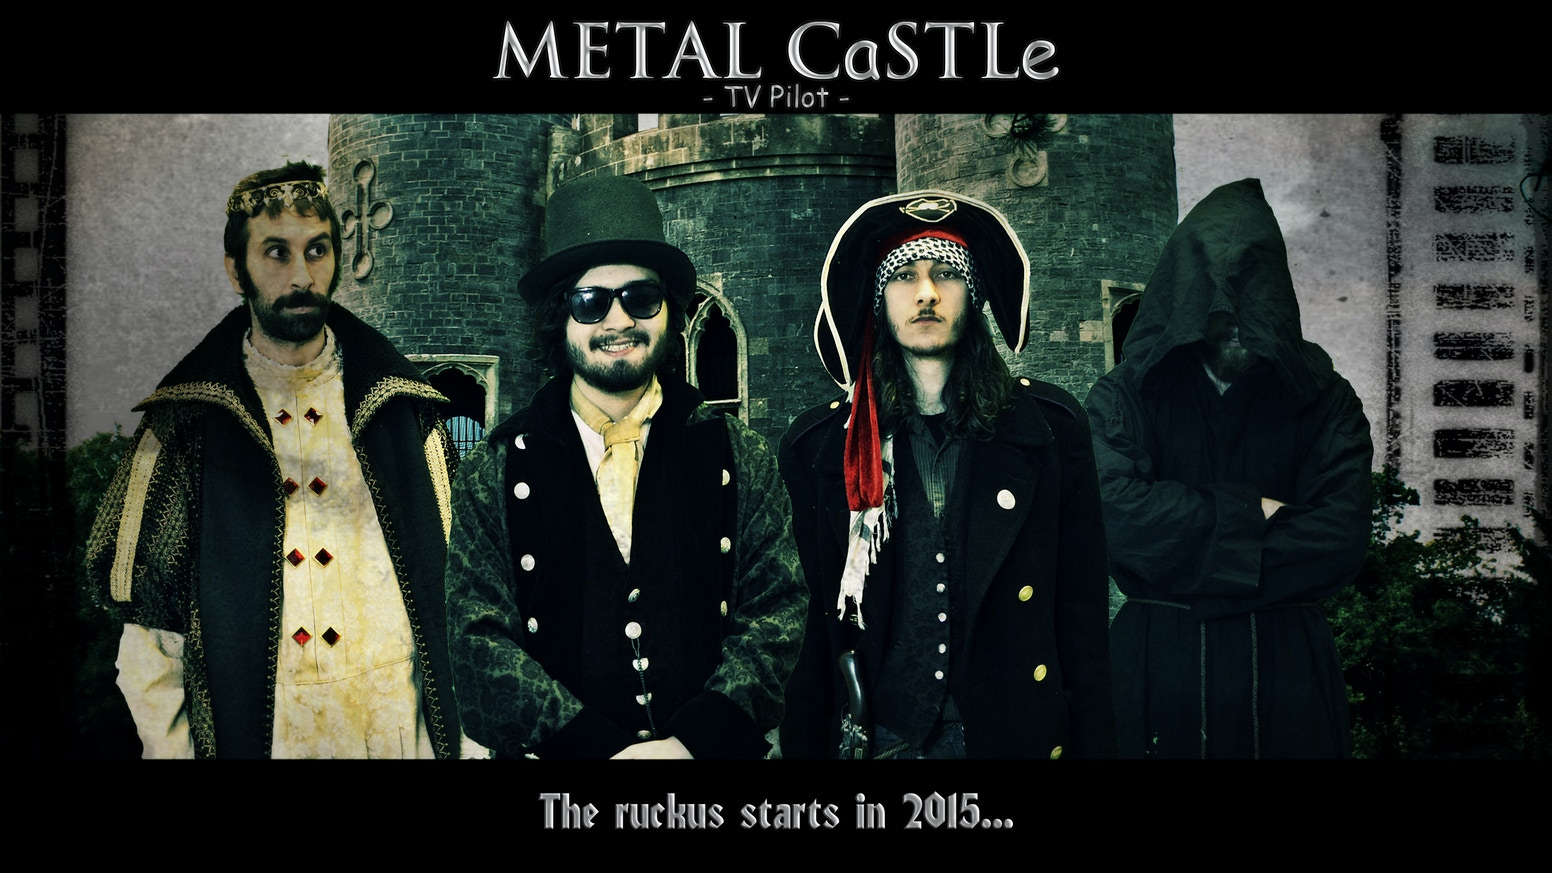 METAL CaSTLe - TV Pilot by Lord Malcolm — Kickstarter